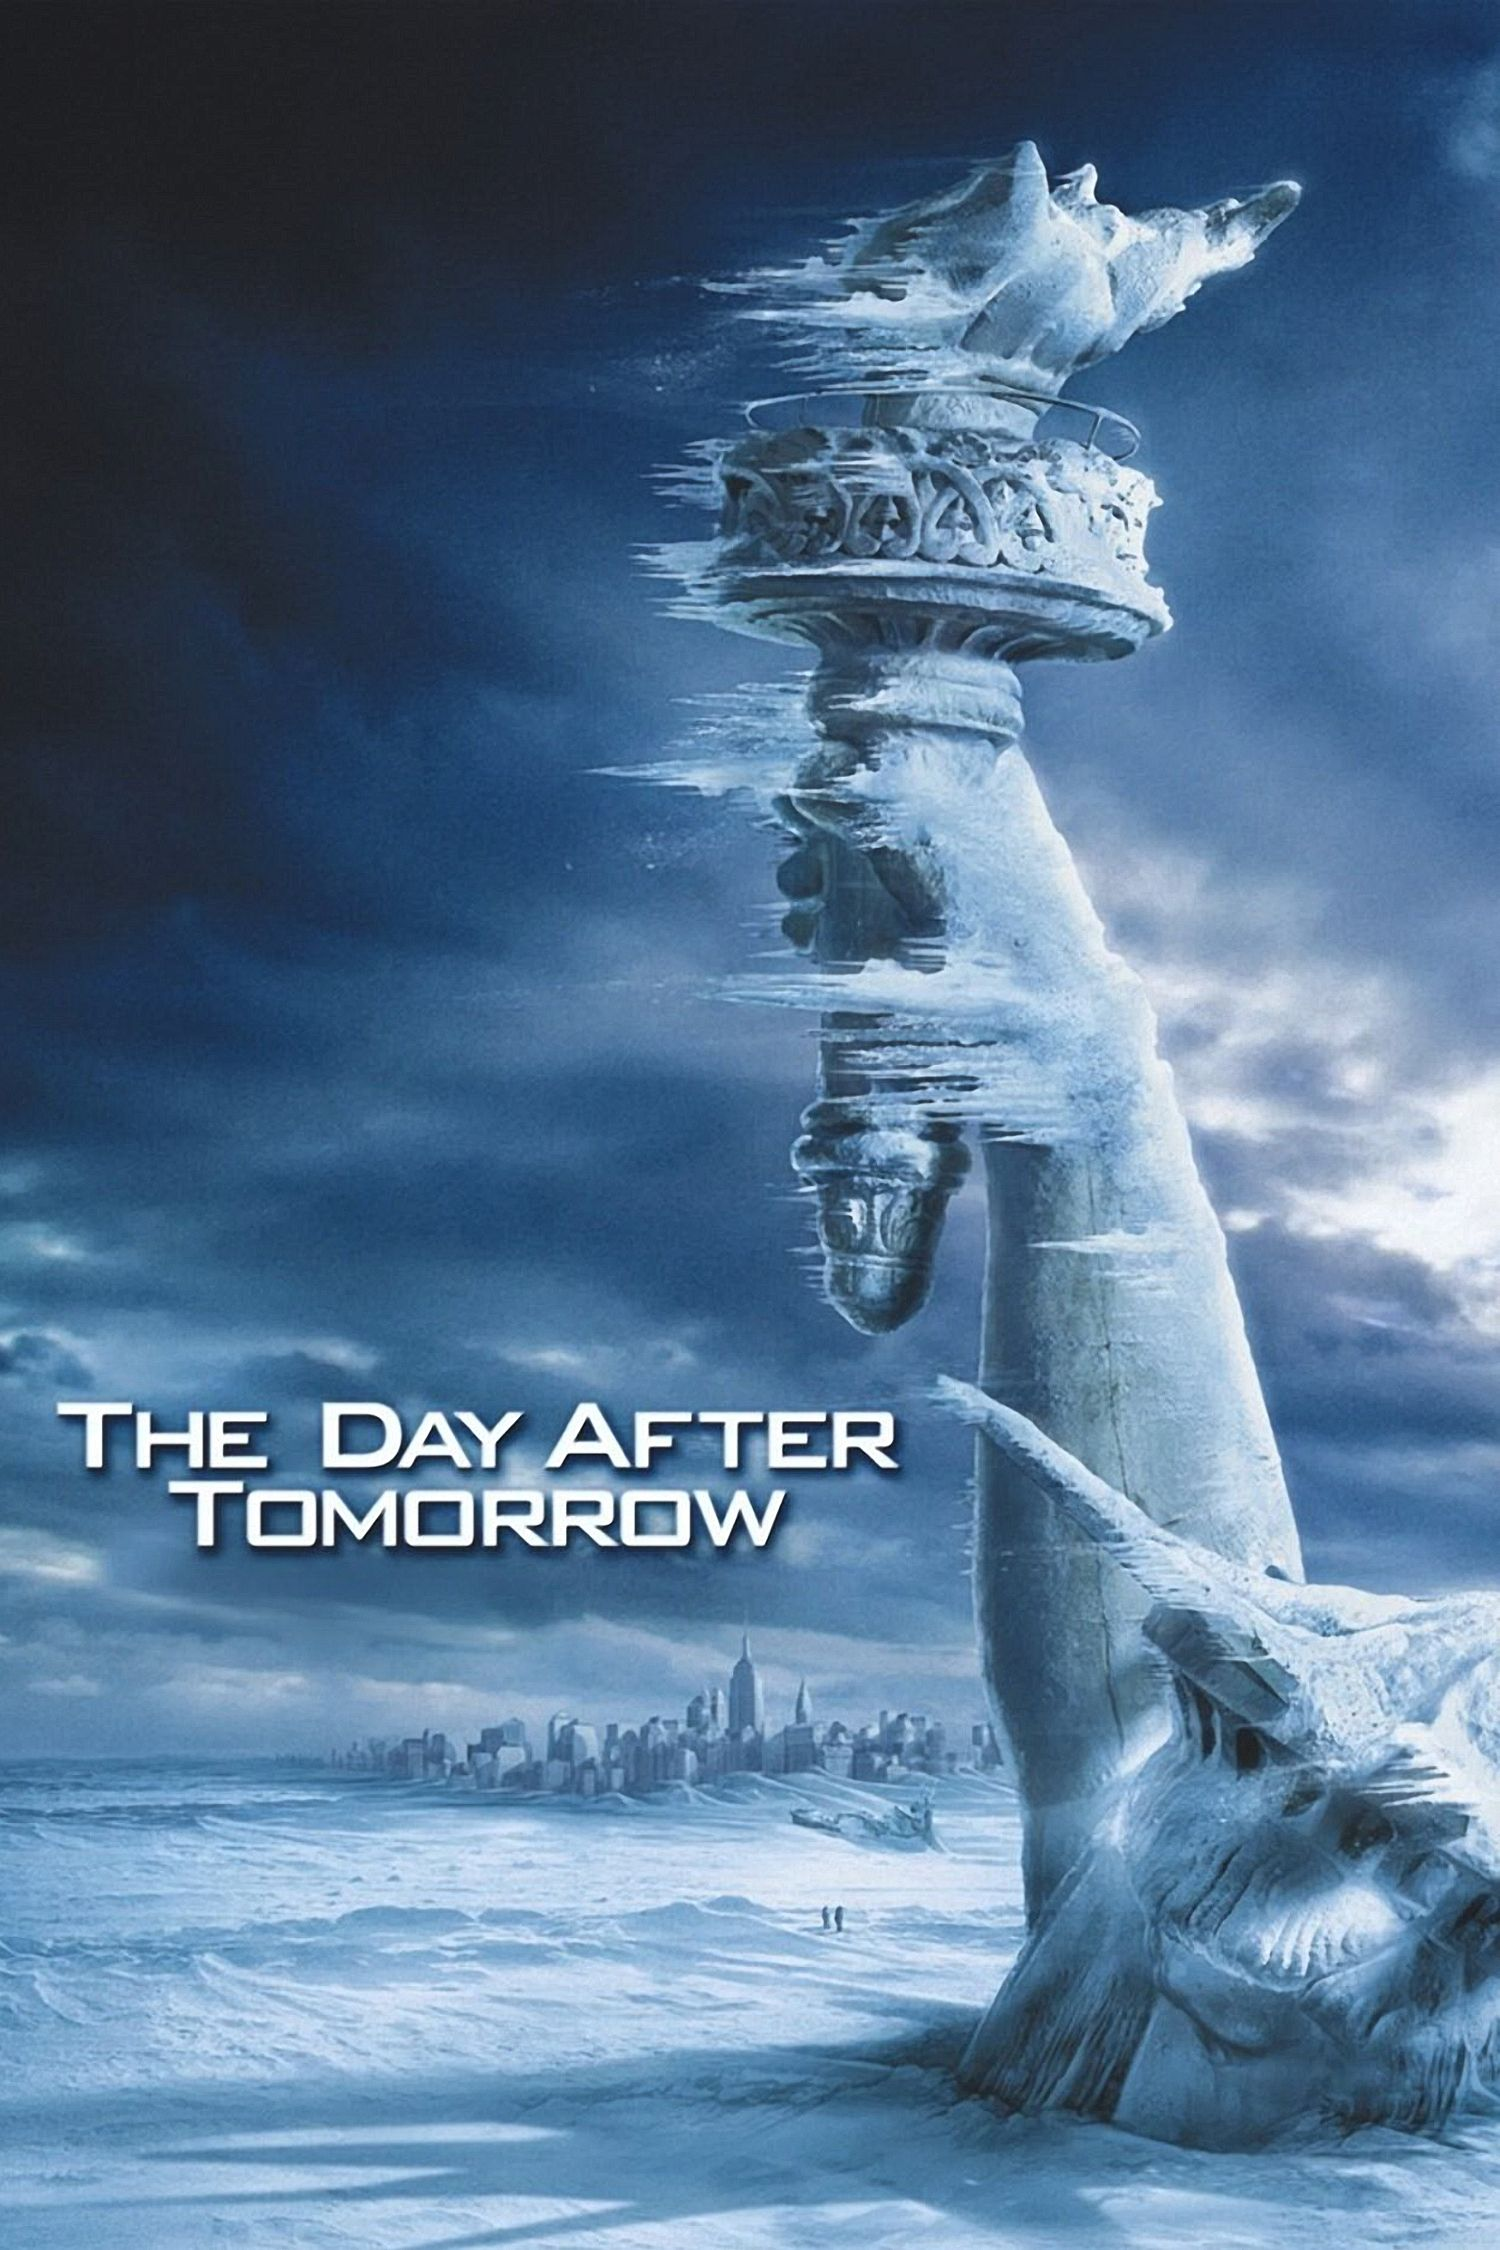 The Day After Tomorrow 2004 Streaming Movies Film Movie Good Movies